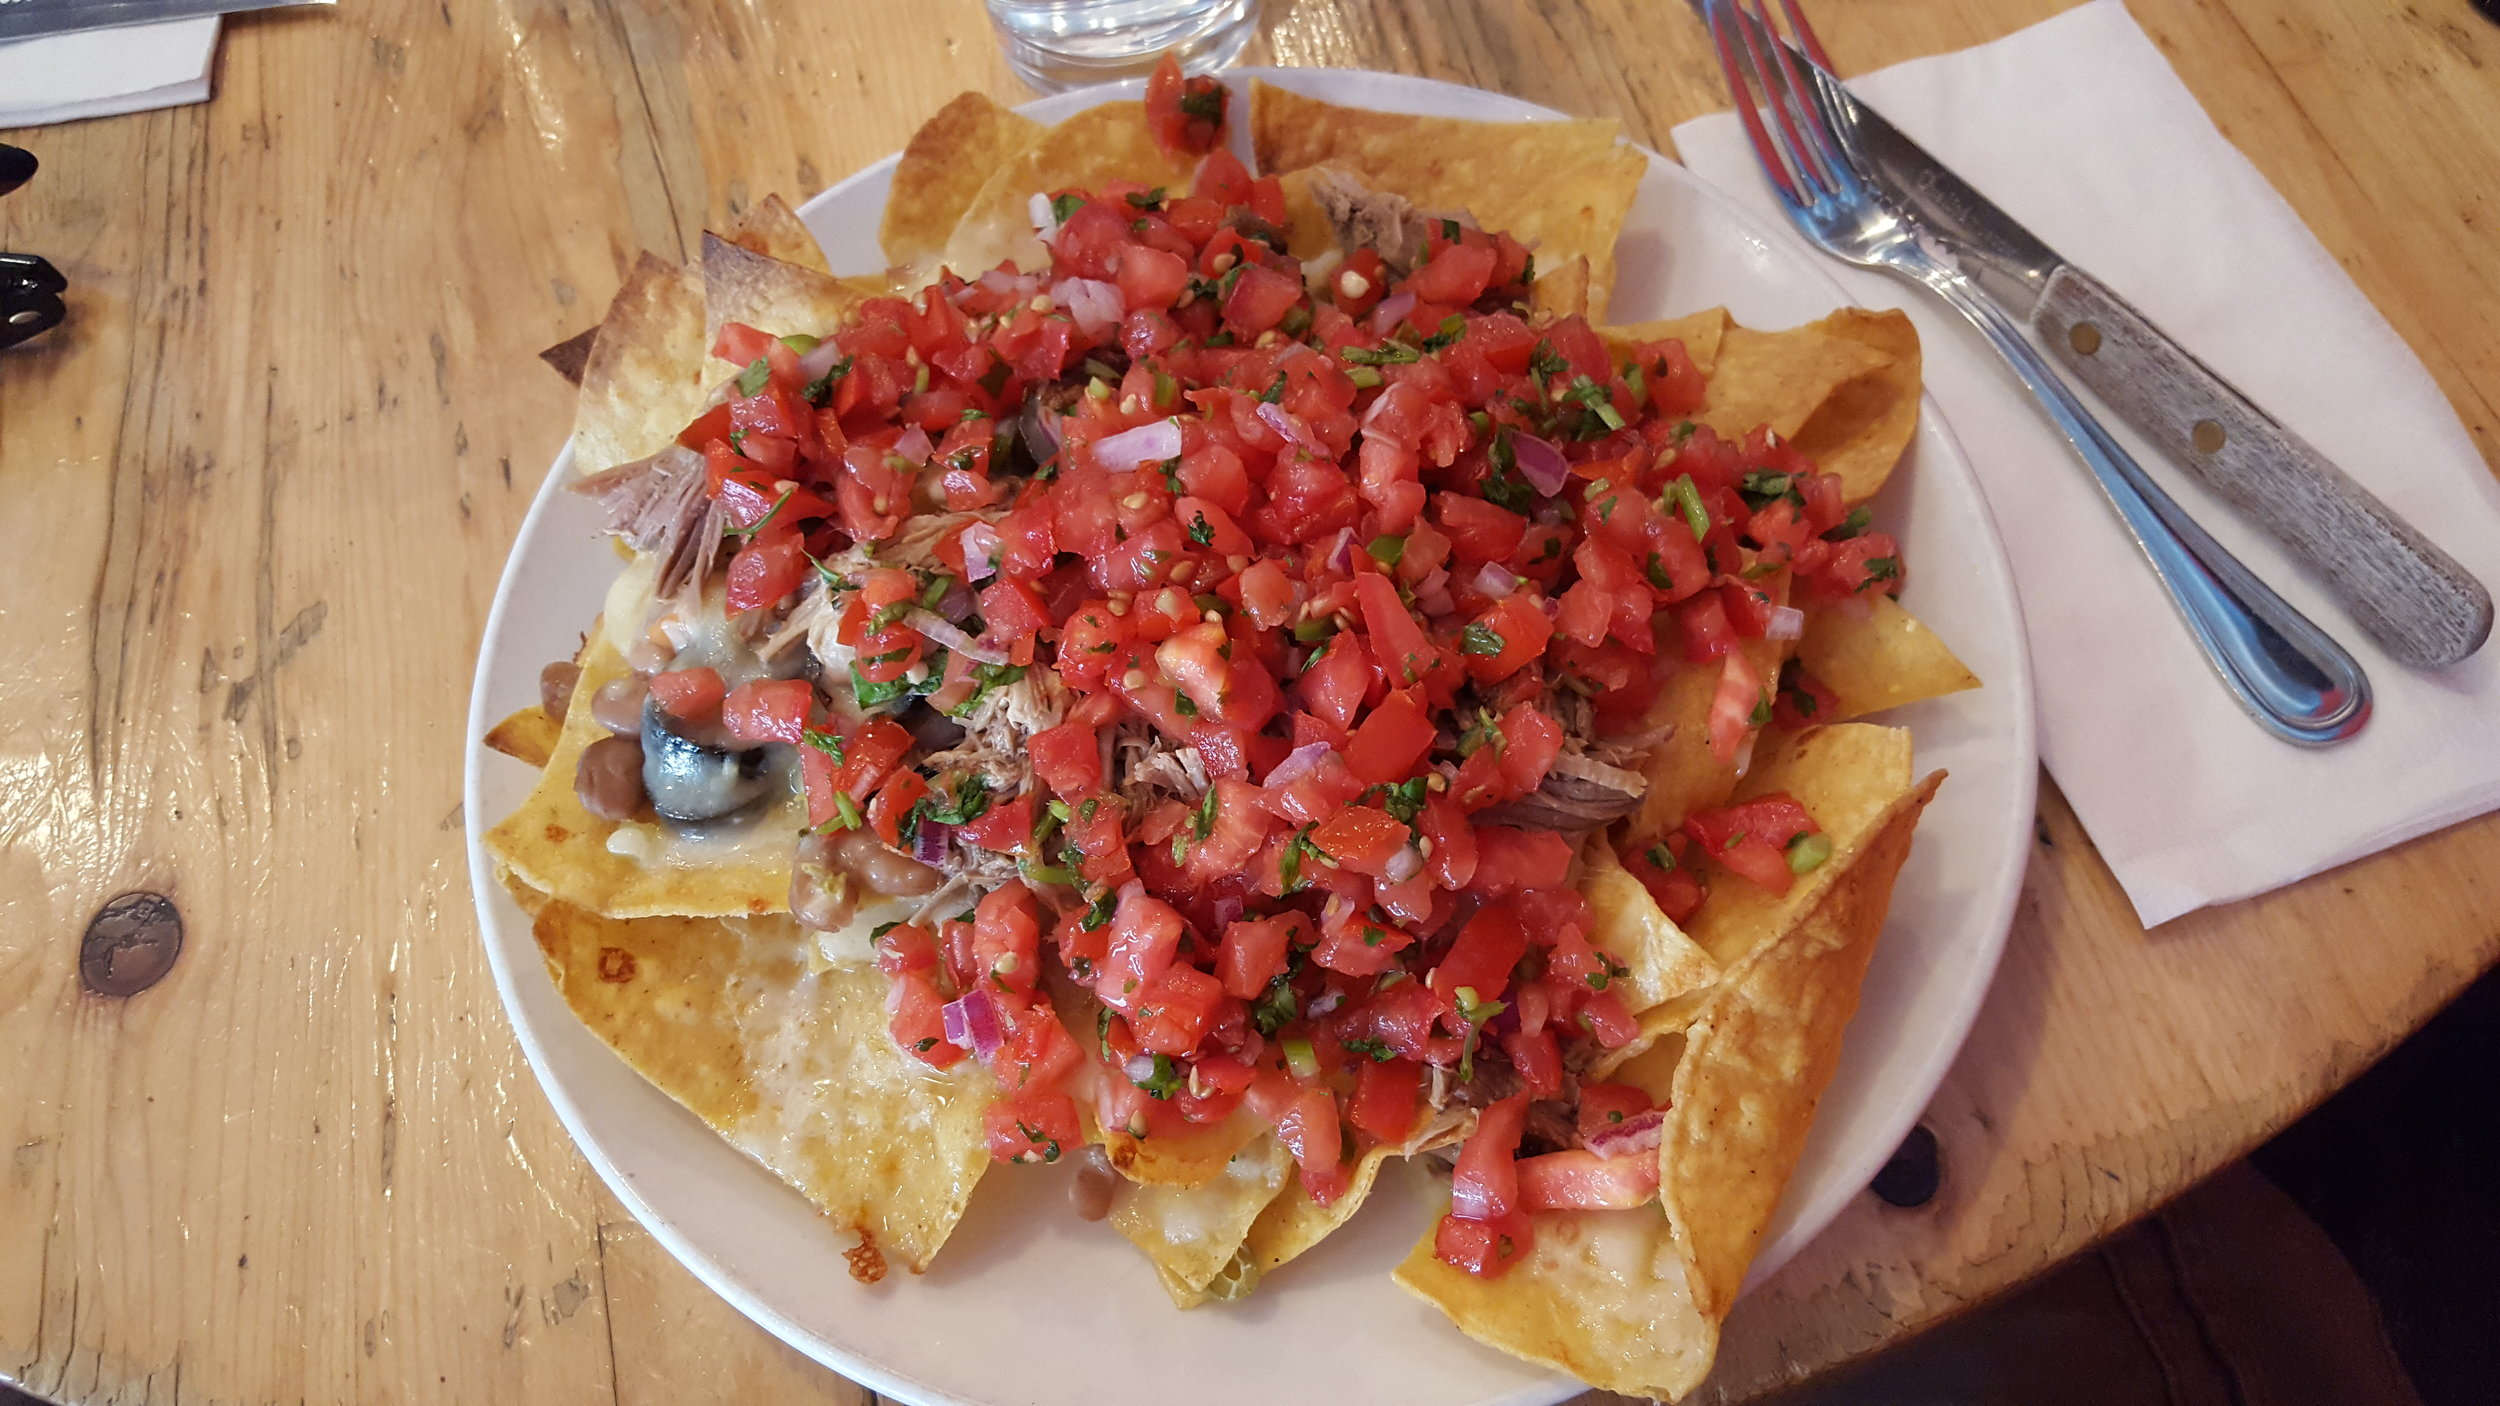 Tortilla Chips, Chihuahua Cheese, Spicy Chopped Pickled Vegetables, Olives, Pinto Beans, Pico de Gallo, Pulled Pork